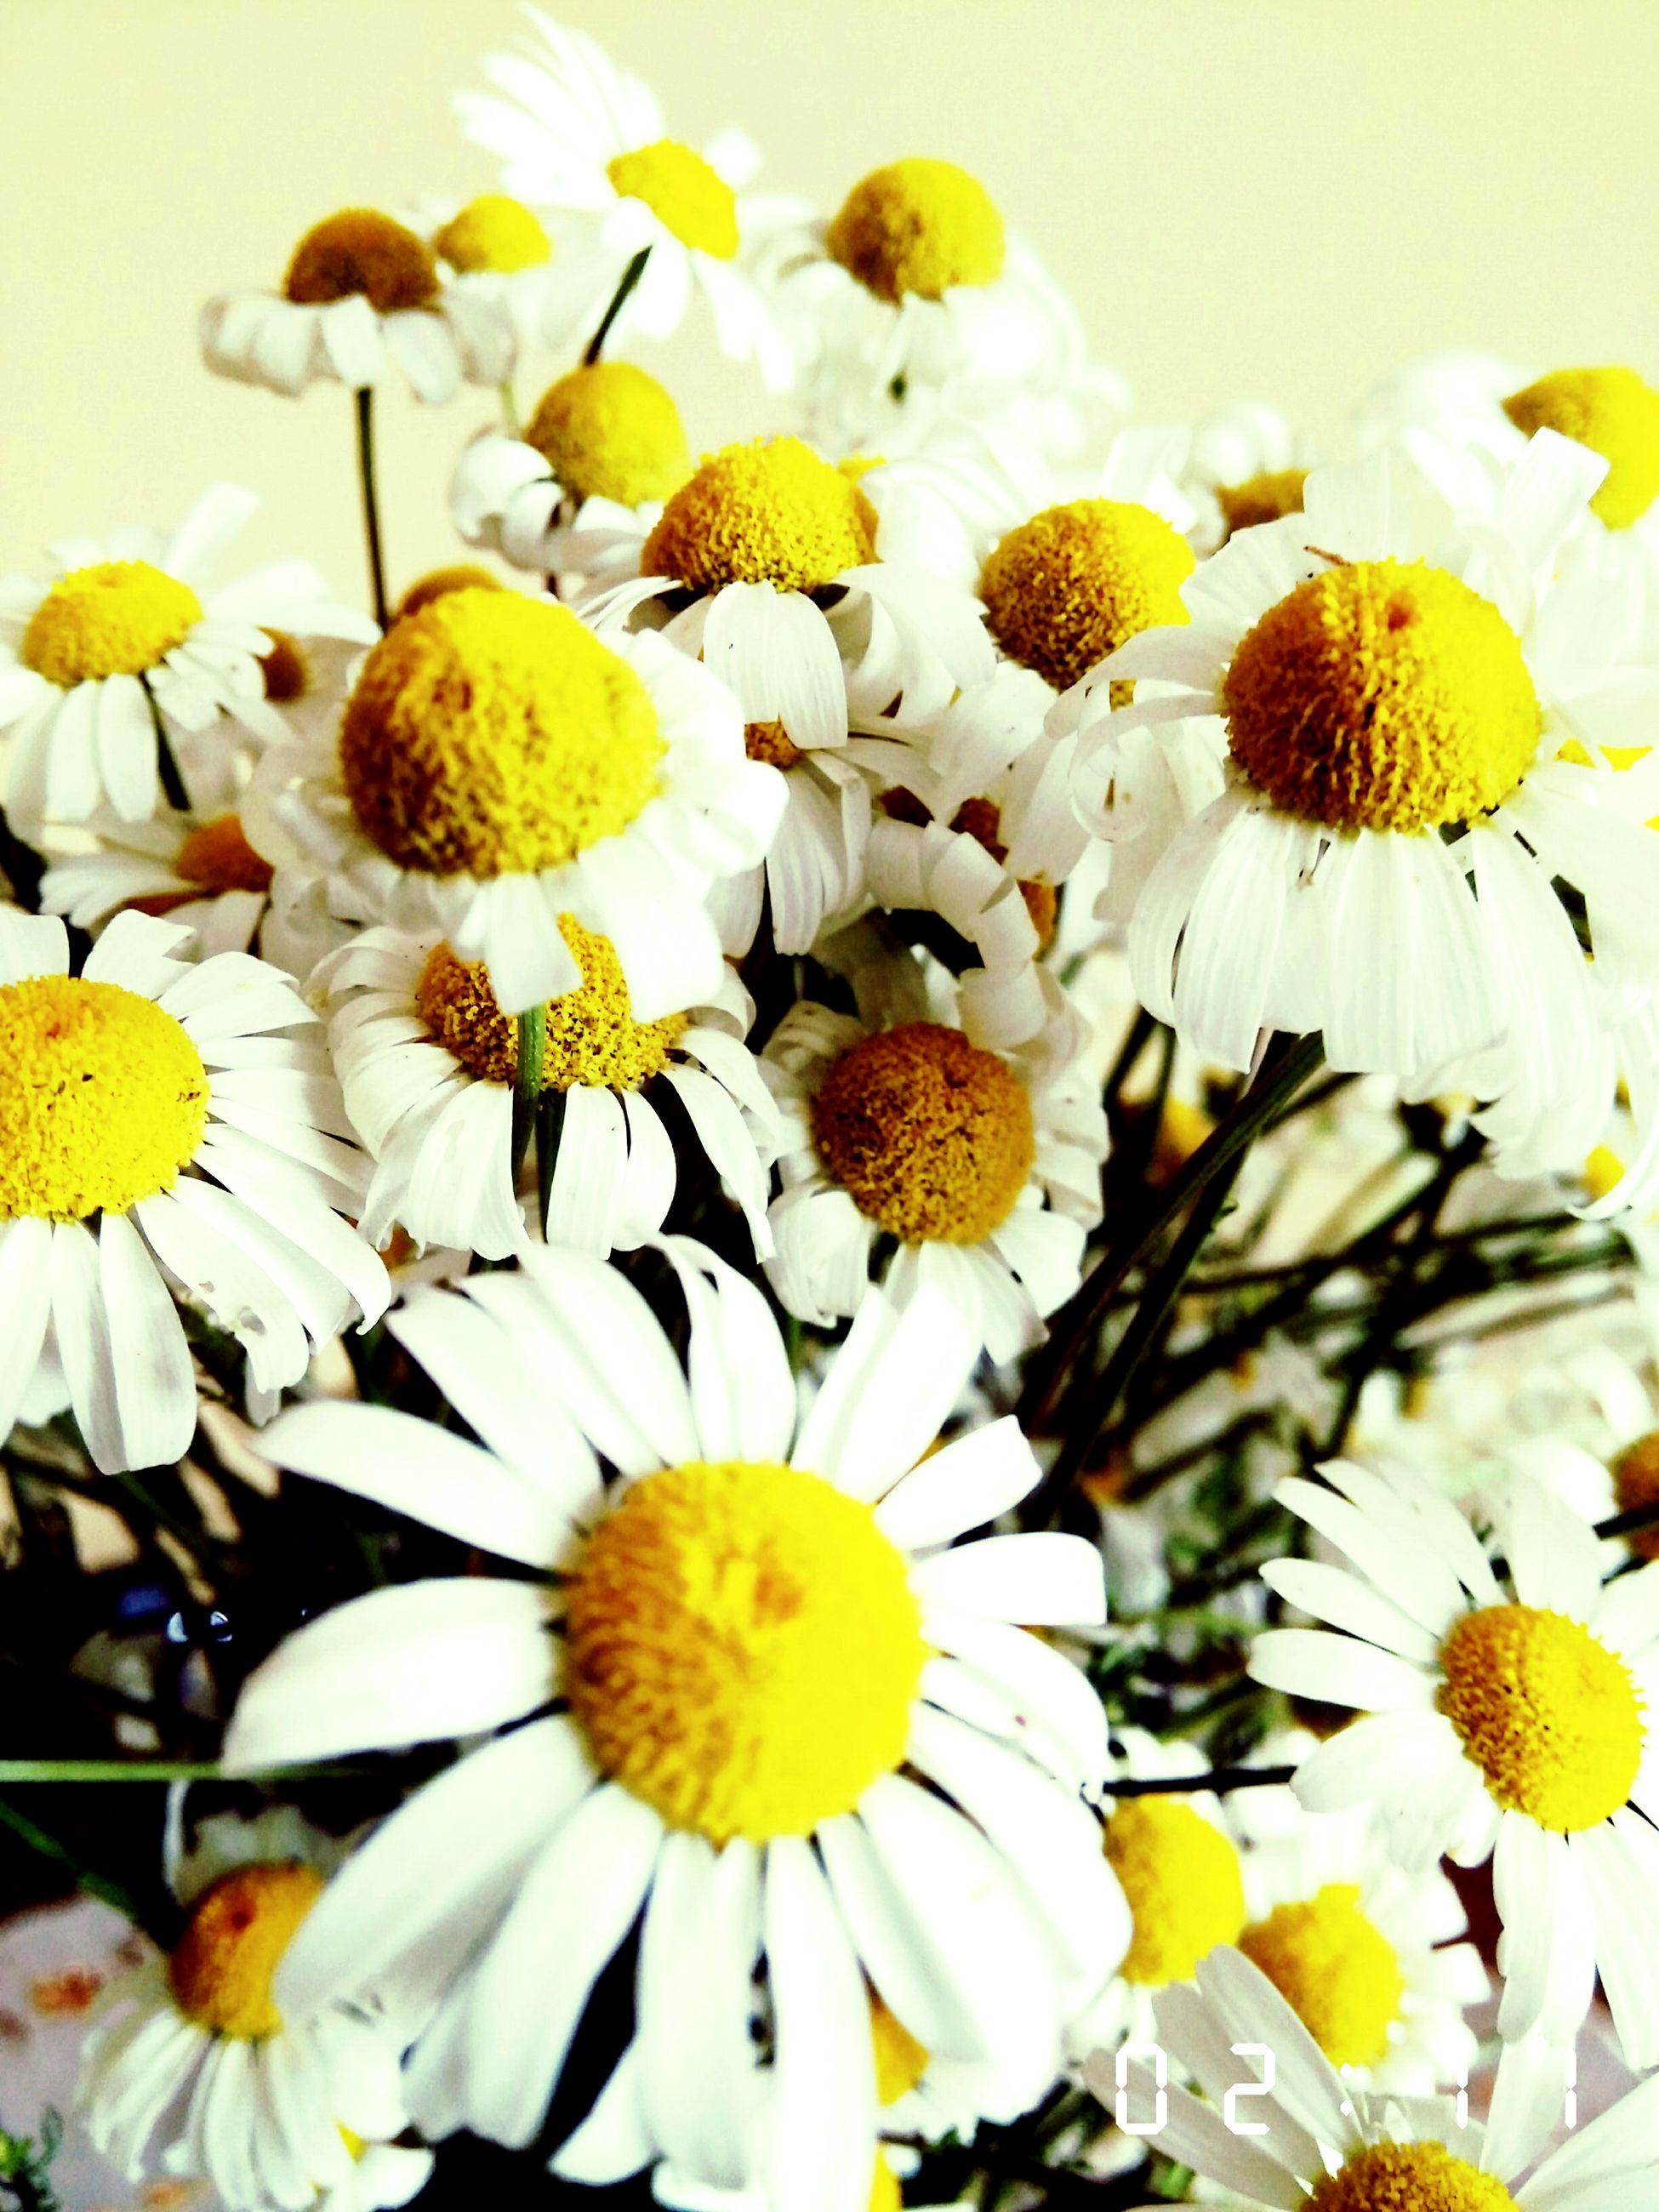 flower, freshness, fragility, petal, flower head, yellow, beauty in nature, white color, growth, daisy, pollen, blooming, nature, plant, close-up, in bloom, blossom, botany, day, no people